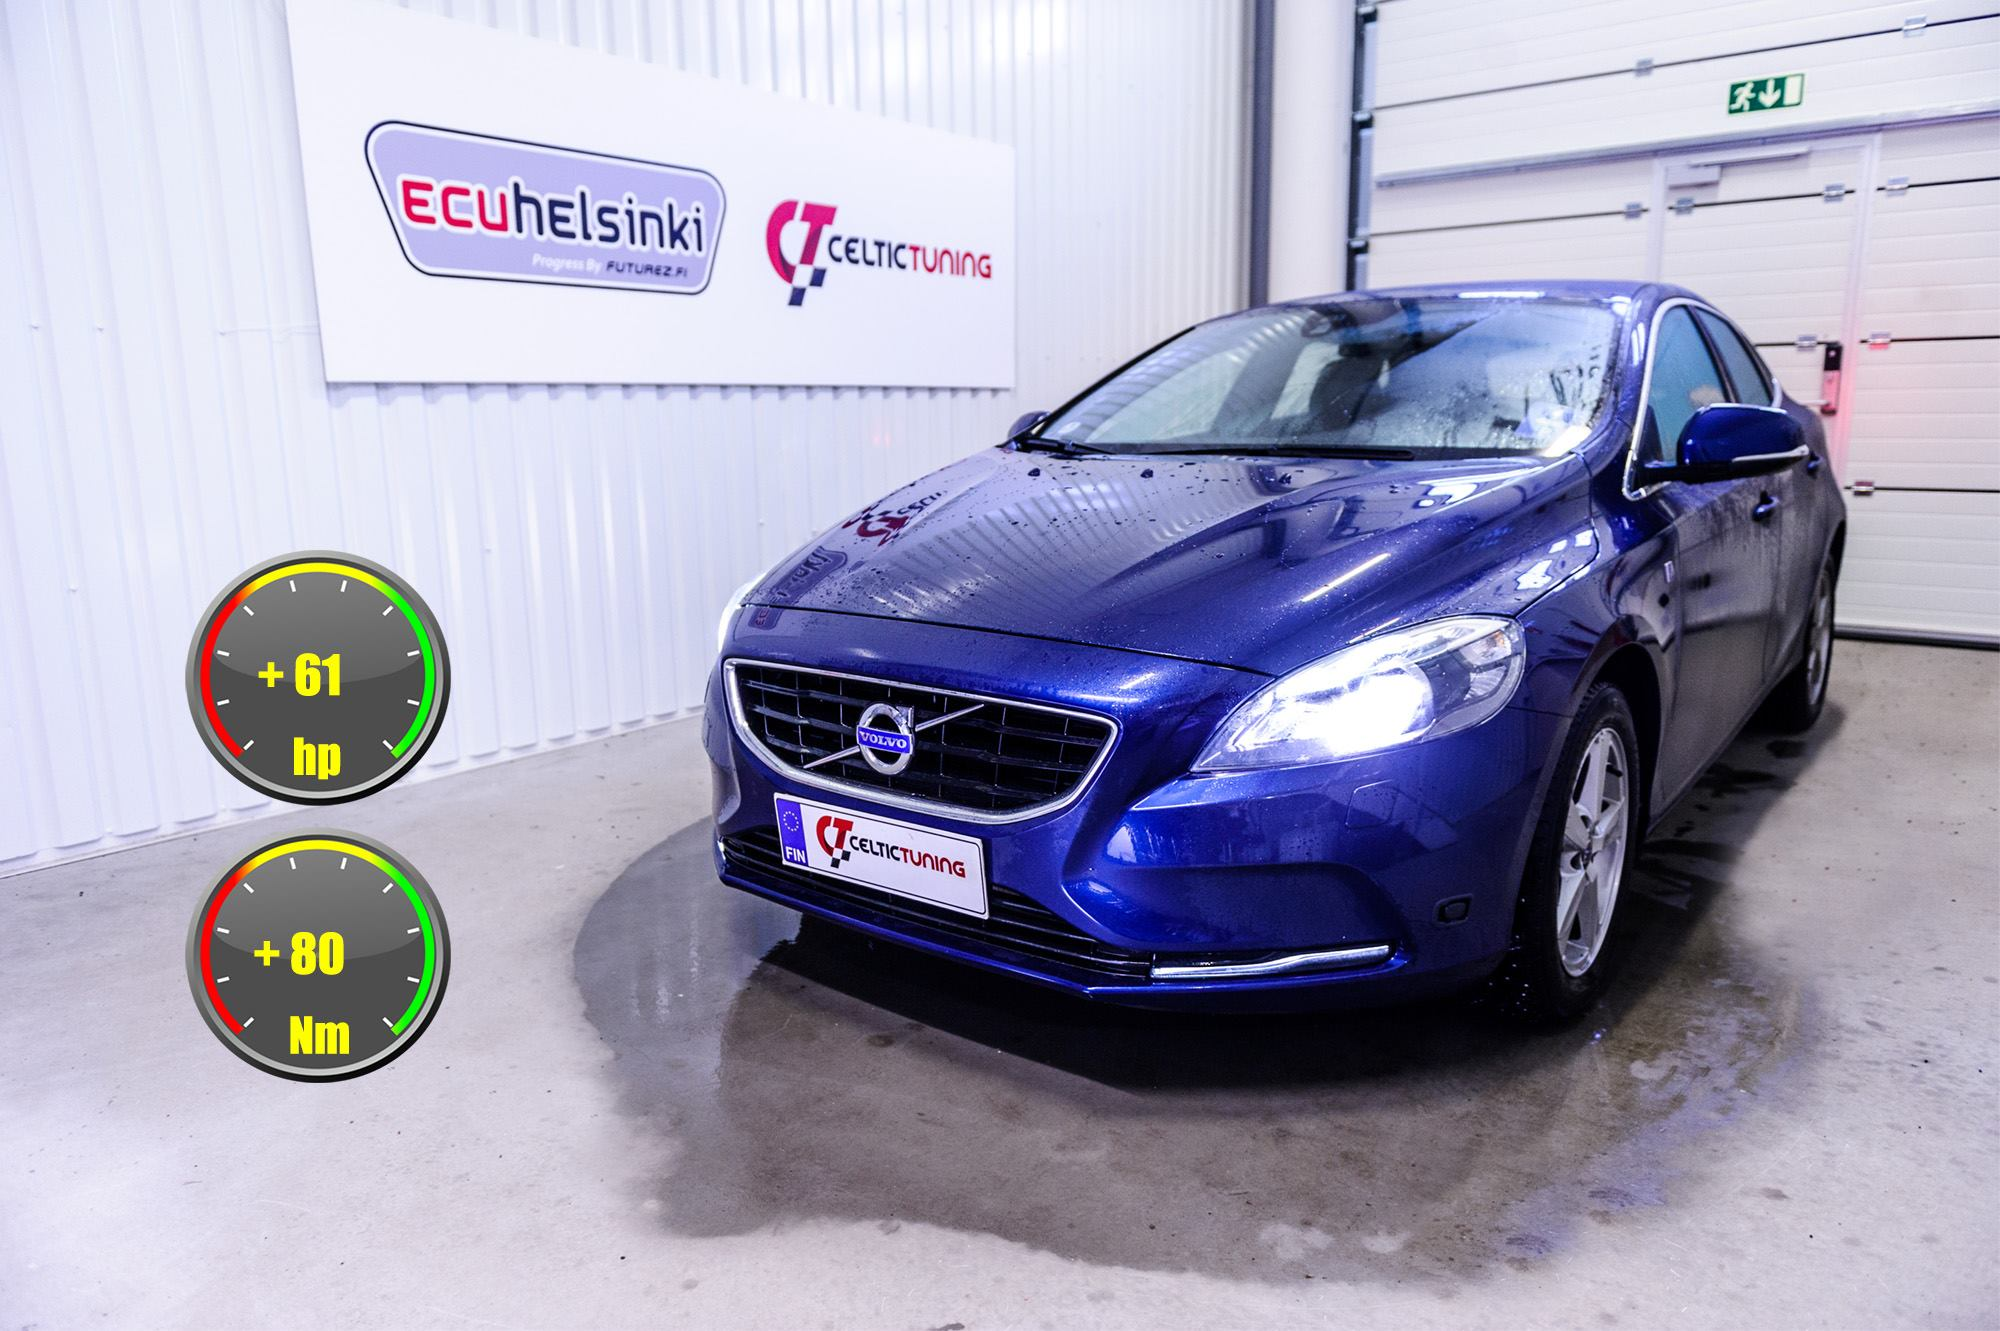 Volvo V40 T3 optimointi celtic tunin